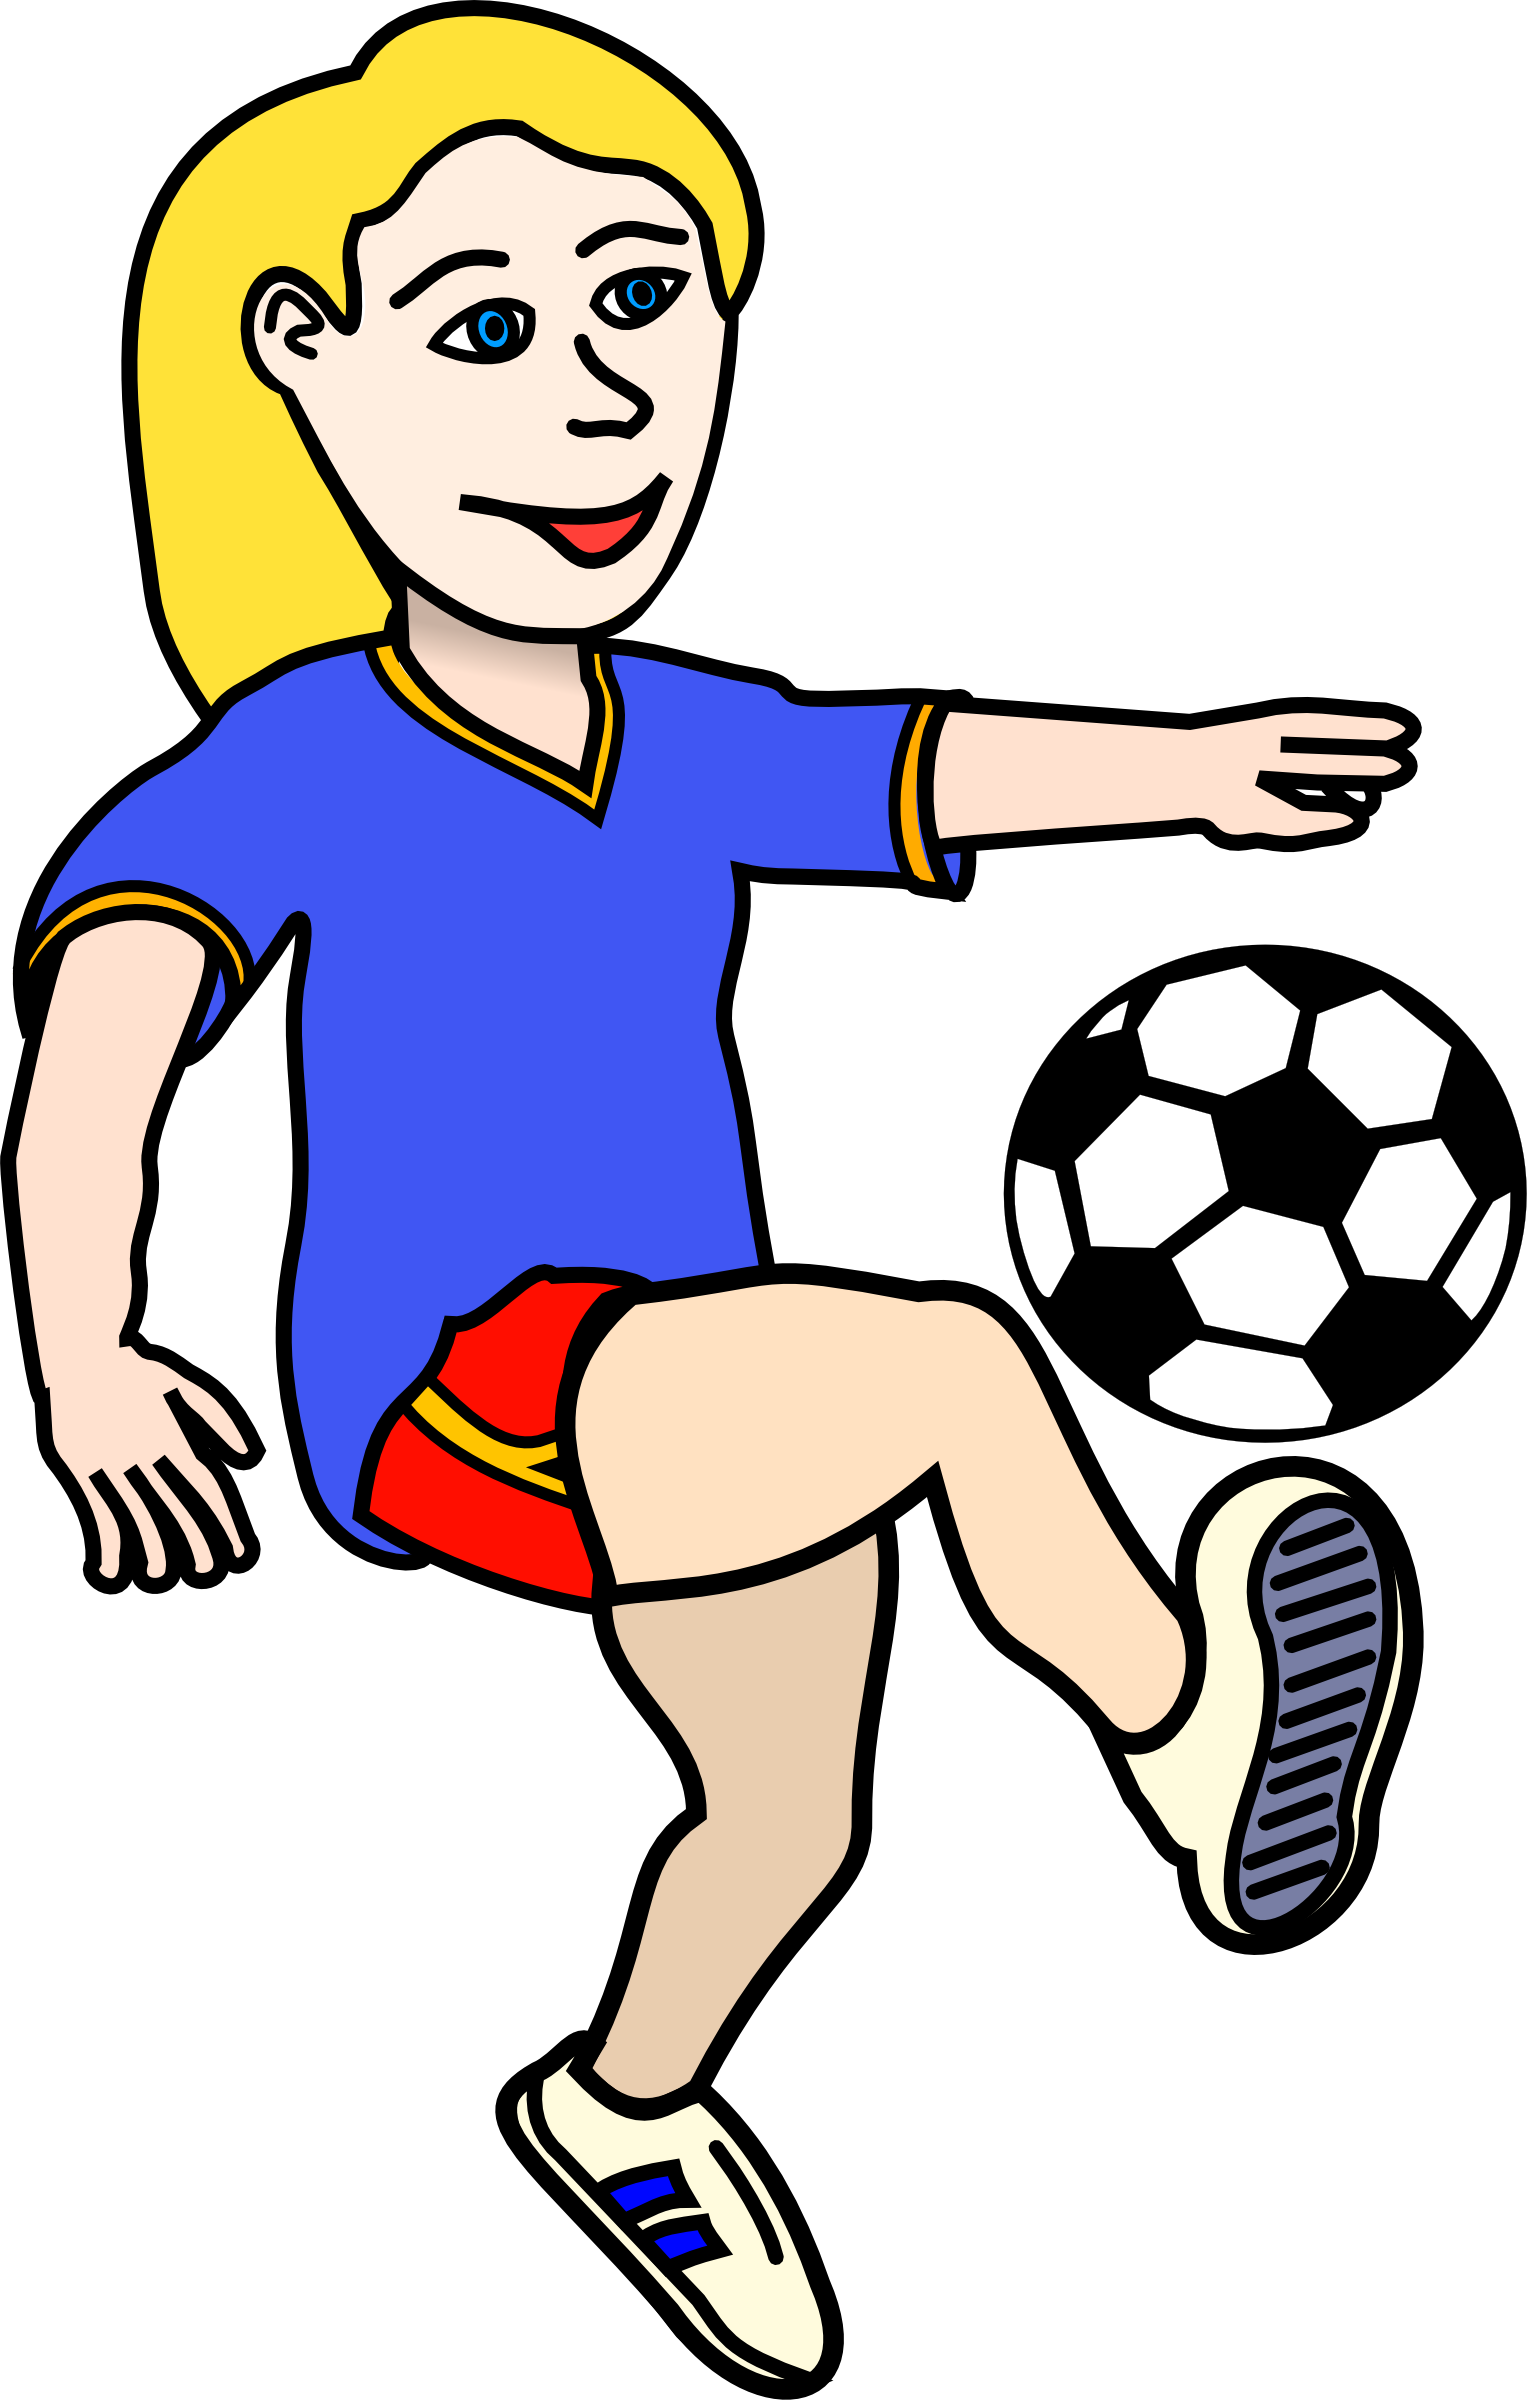 Football practice clipart svg freeuse library Girl Kicking Soccer Ball Clip Art | Clipart Panda - Free Clipart Images svg freeuse library